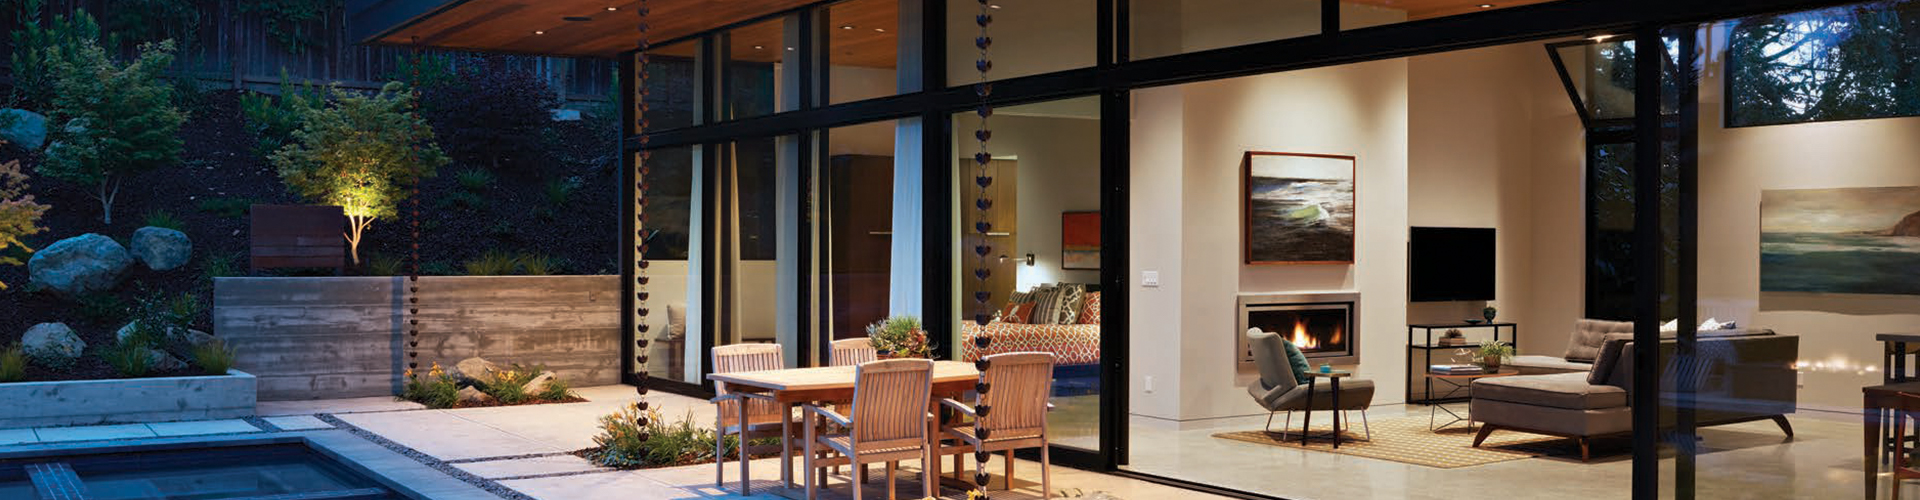 Indoor-outdoor living is possible with the window and door options from Western Window Systems.